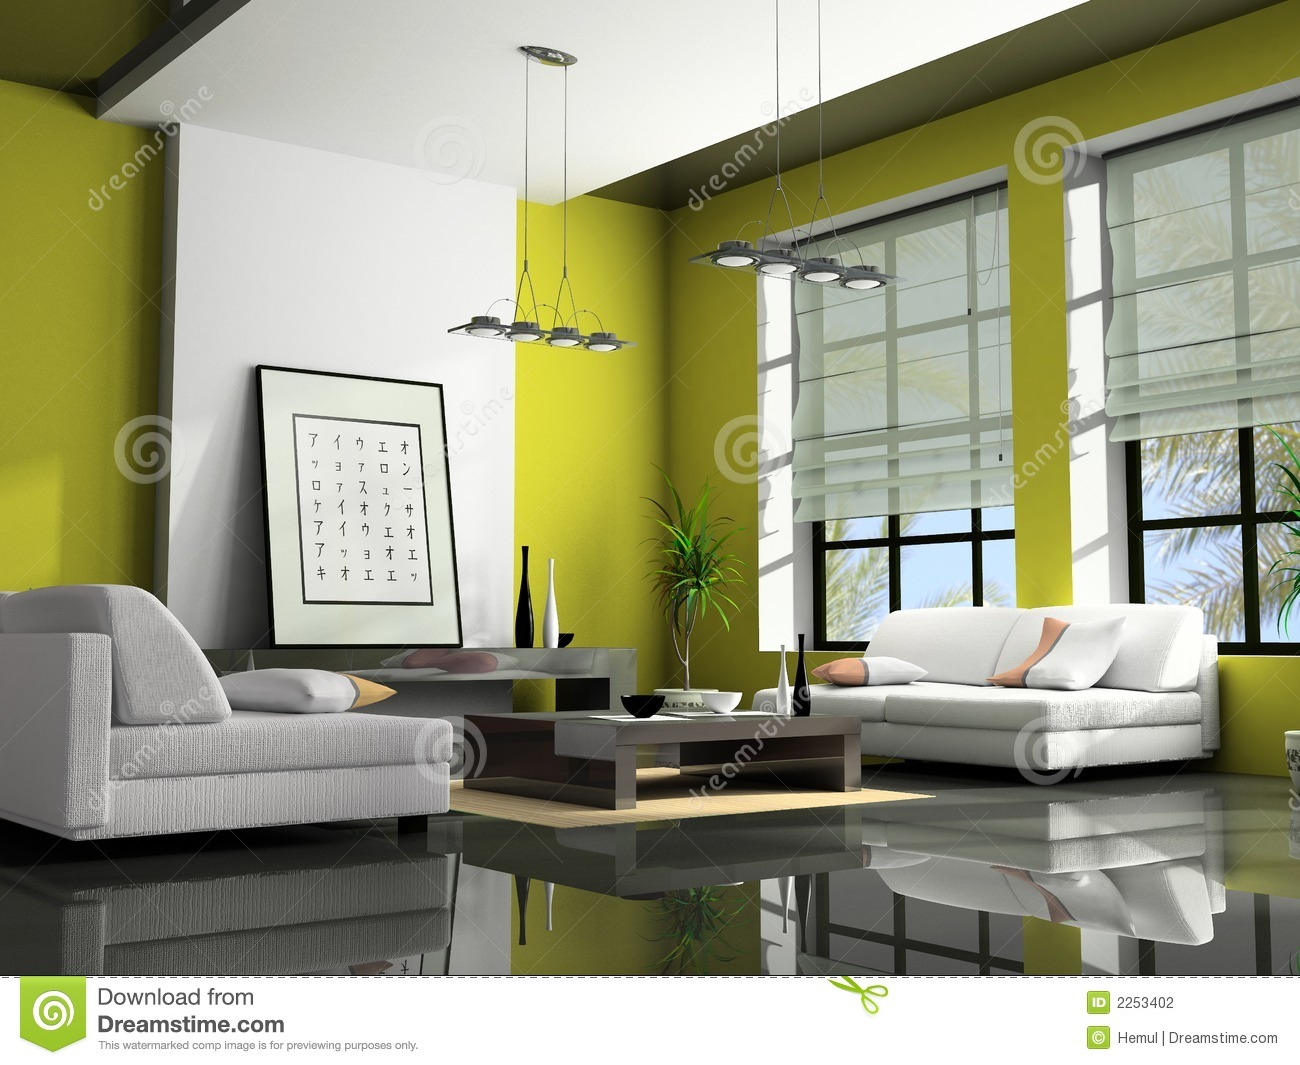 Home interior 3d rendering stock photo image of for 3d interior design online